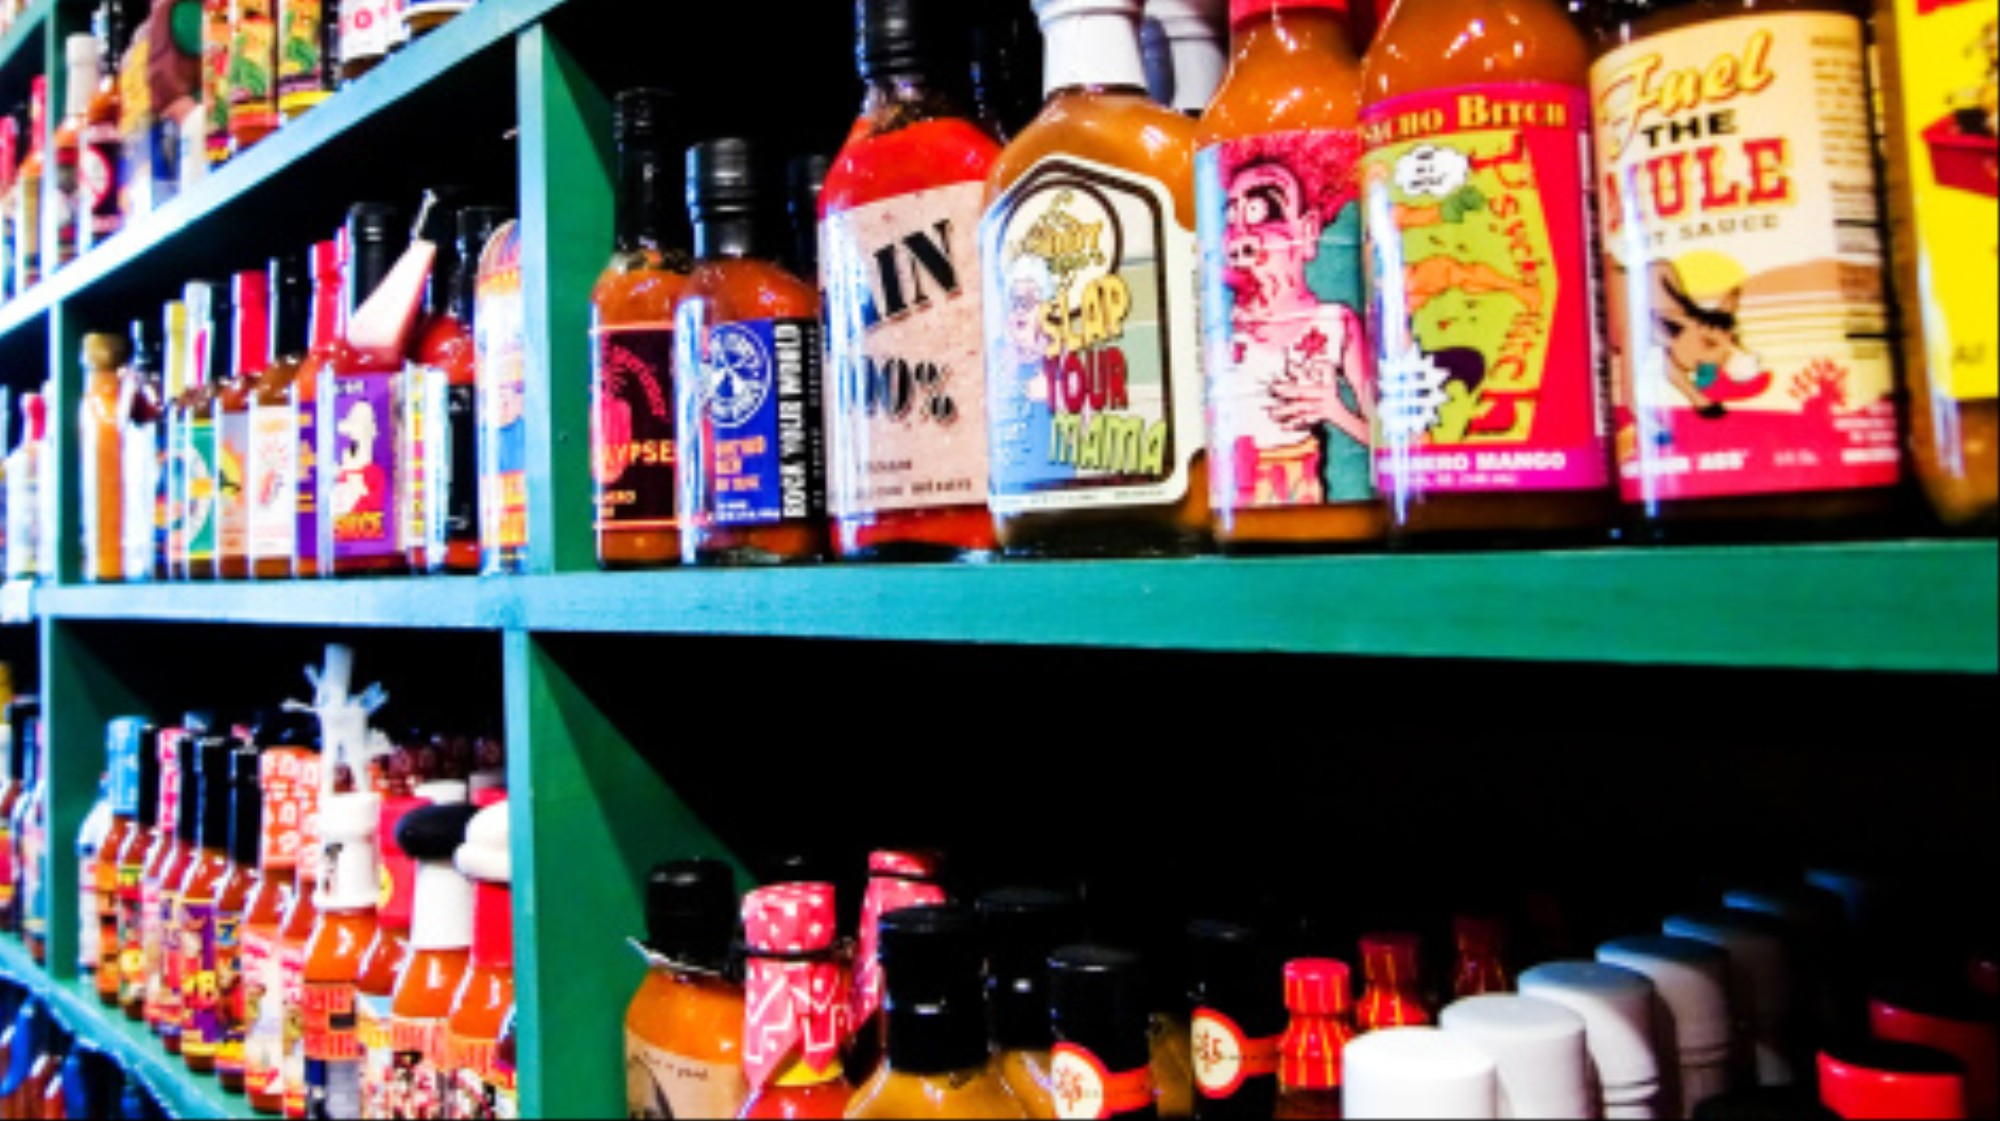 Is Your Insane Hot Sauce Habit Destroying Your Stomach? - VICE